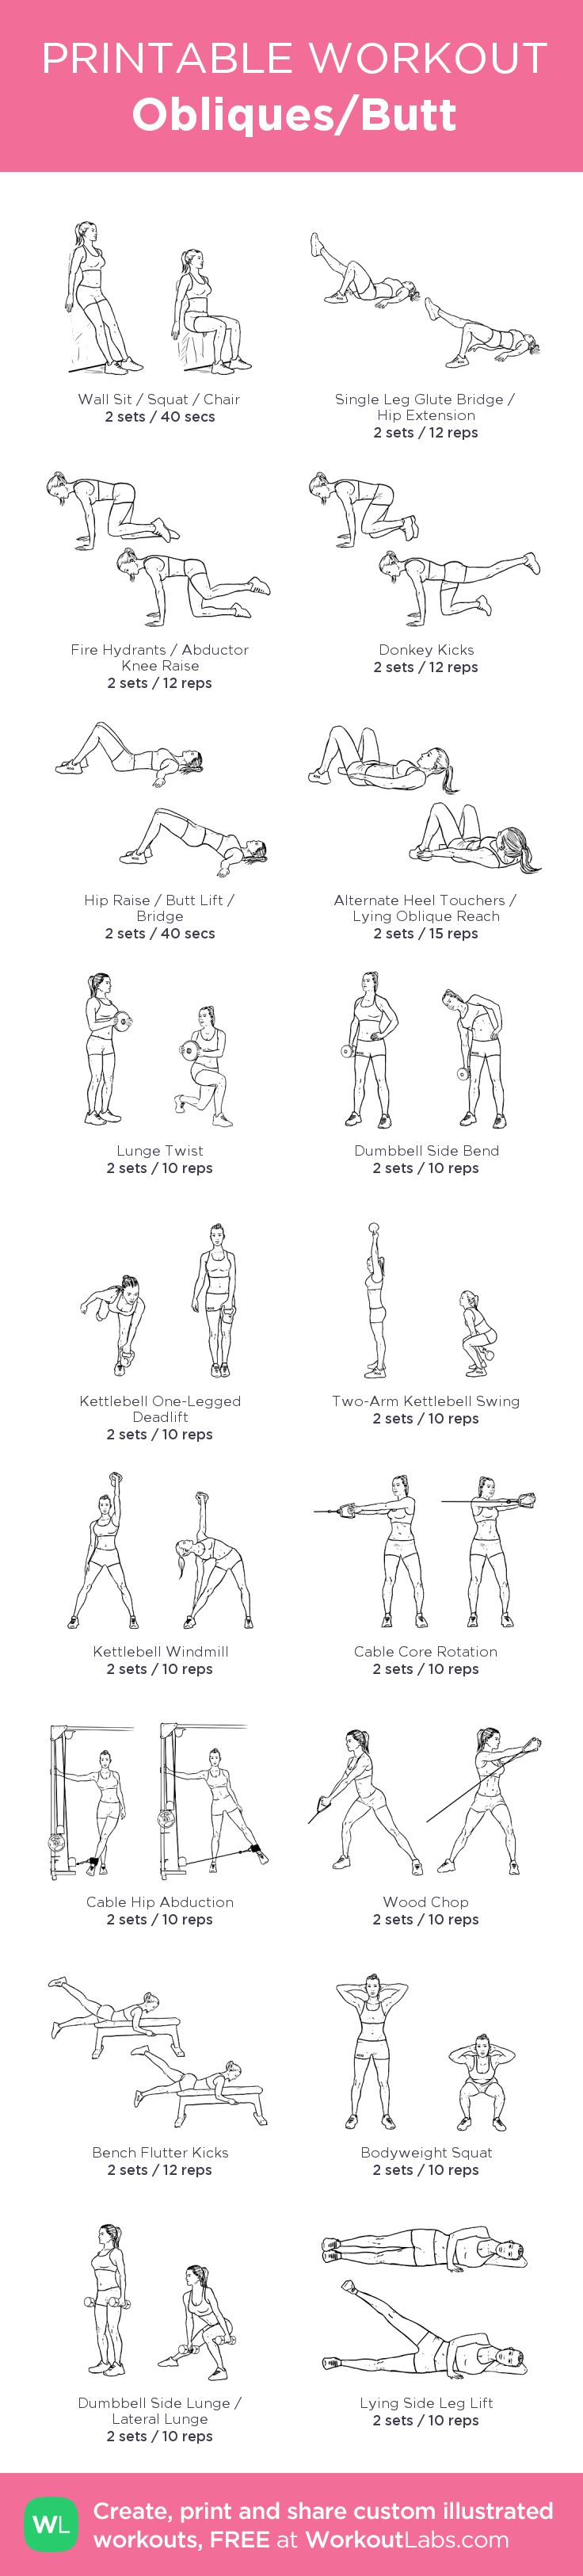 Obliques/Butt: my visual workout created at WorkoutLabs.com • Click through to customize and download as a FREE PDF! #customworkout